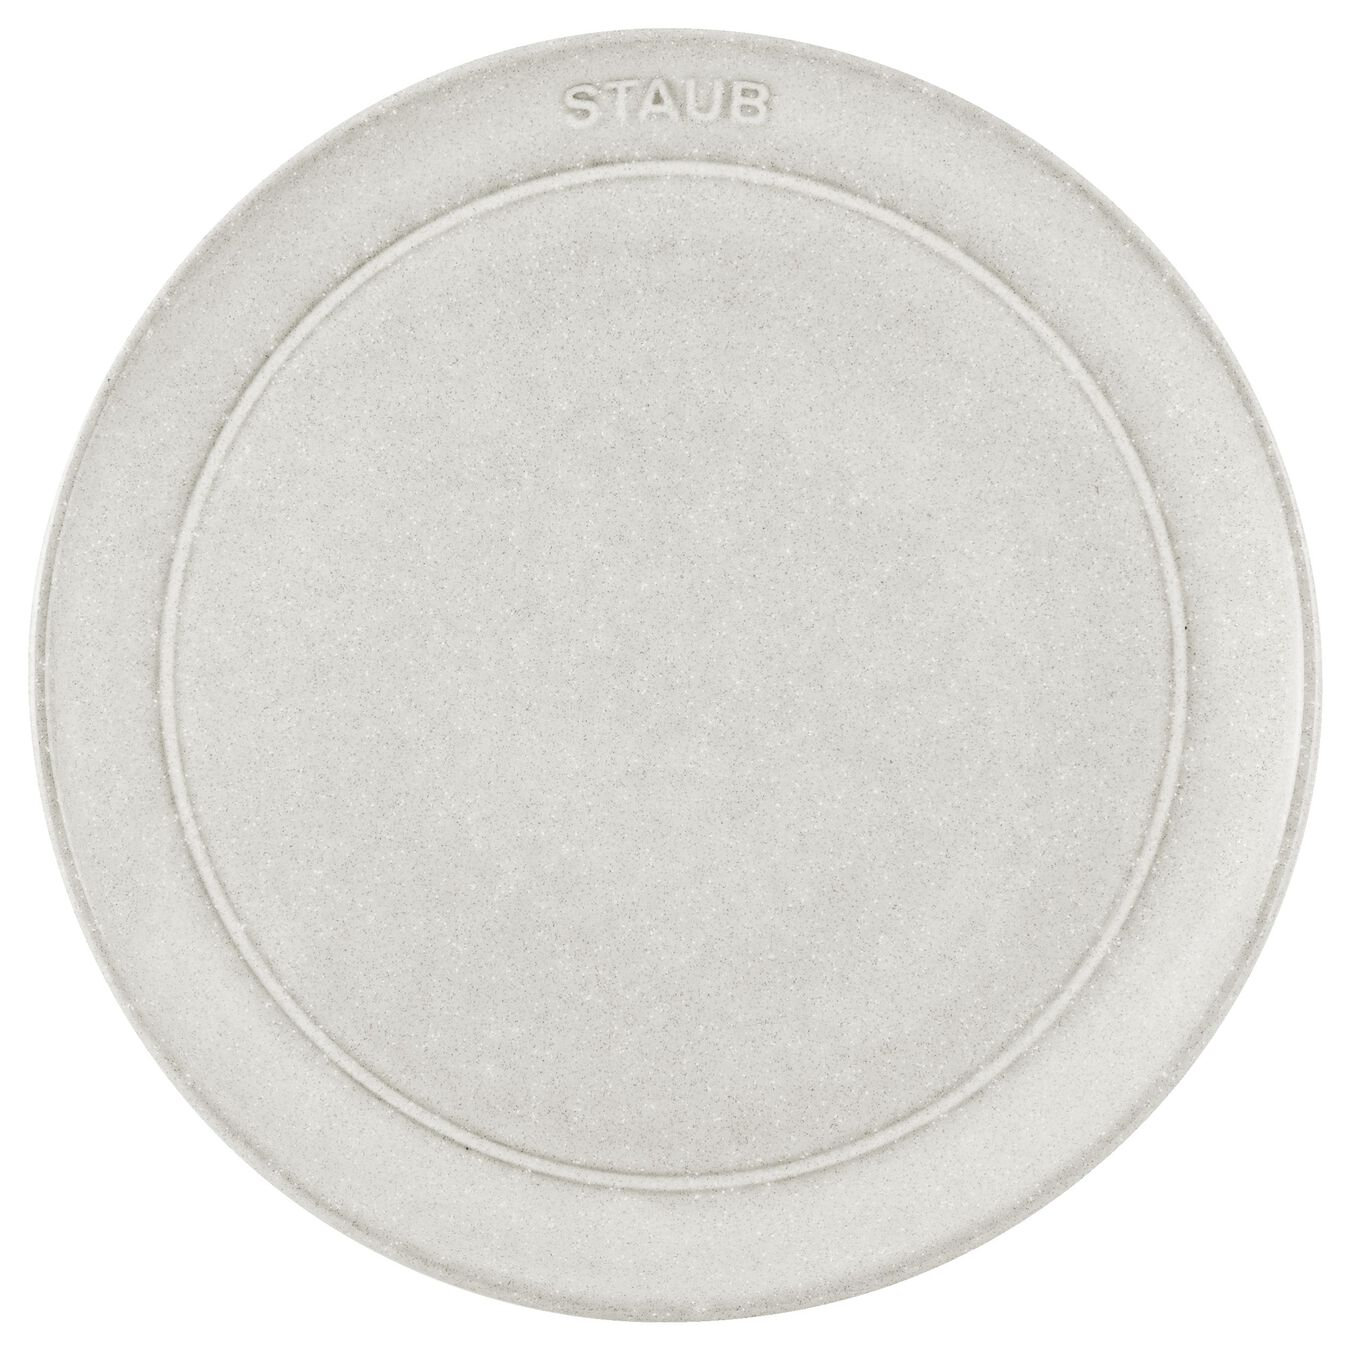 20 cm Ceramic round Plate flat, White Truffle - Visual Imperfections,,large 2